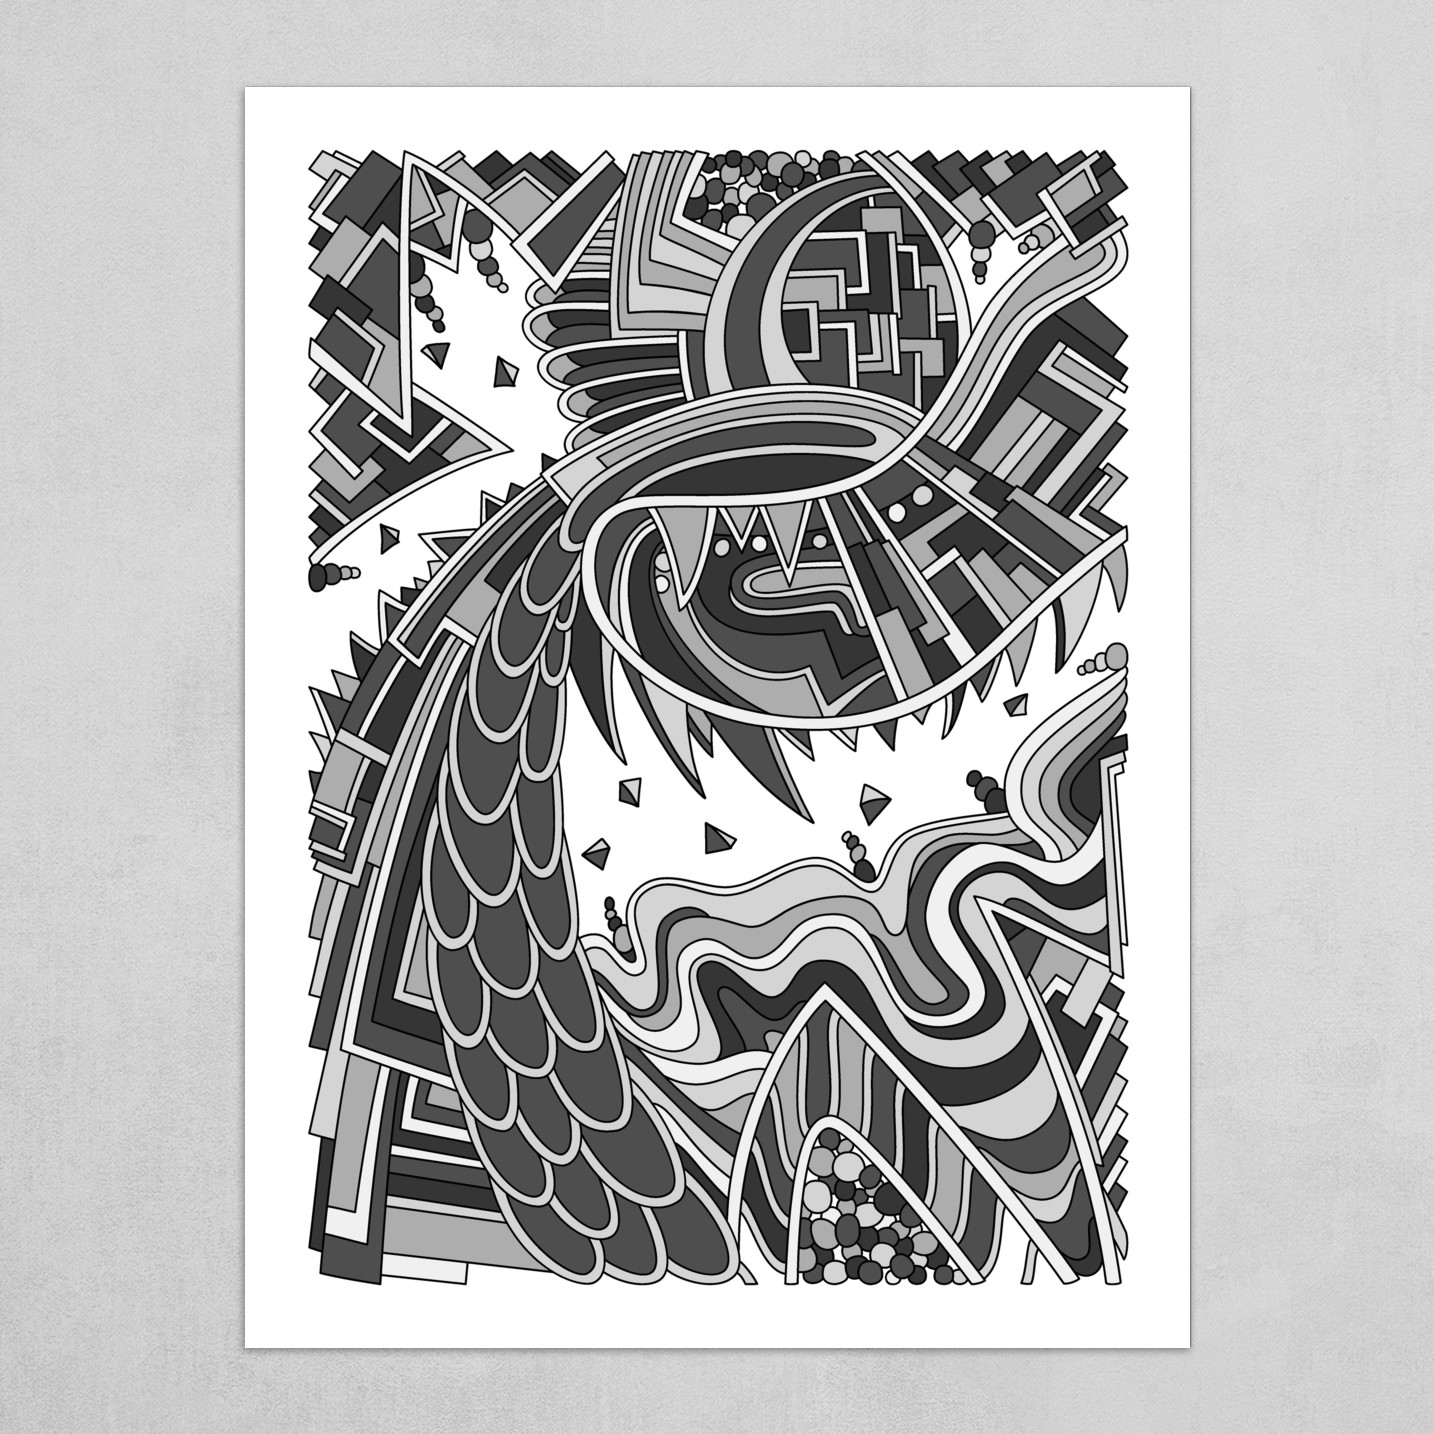 Wandering Abstract Line Art 49: Grayscale